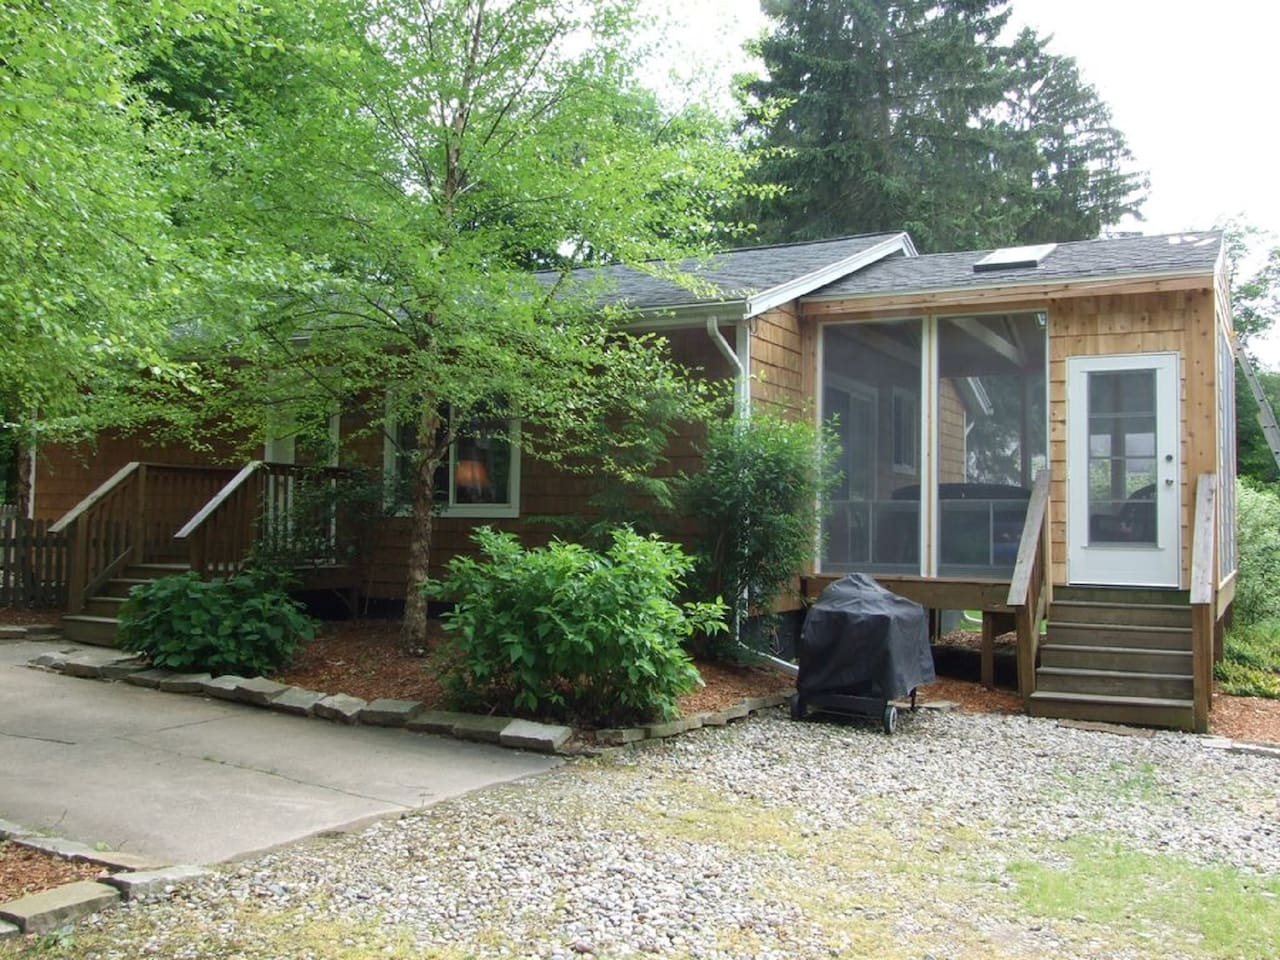 Lovely cedar shake cottage studio on a private wooded acre with large screen porch